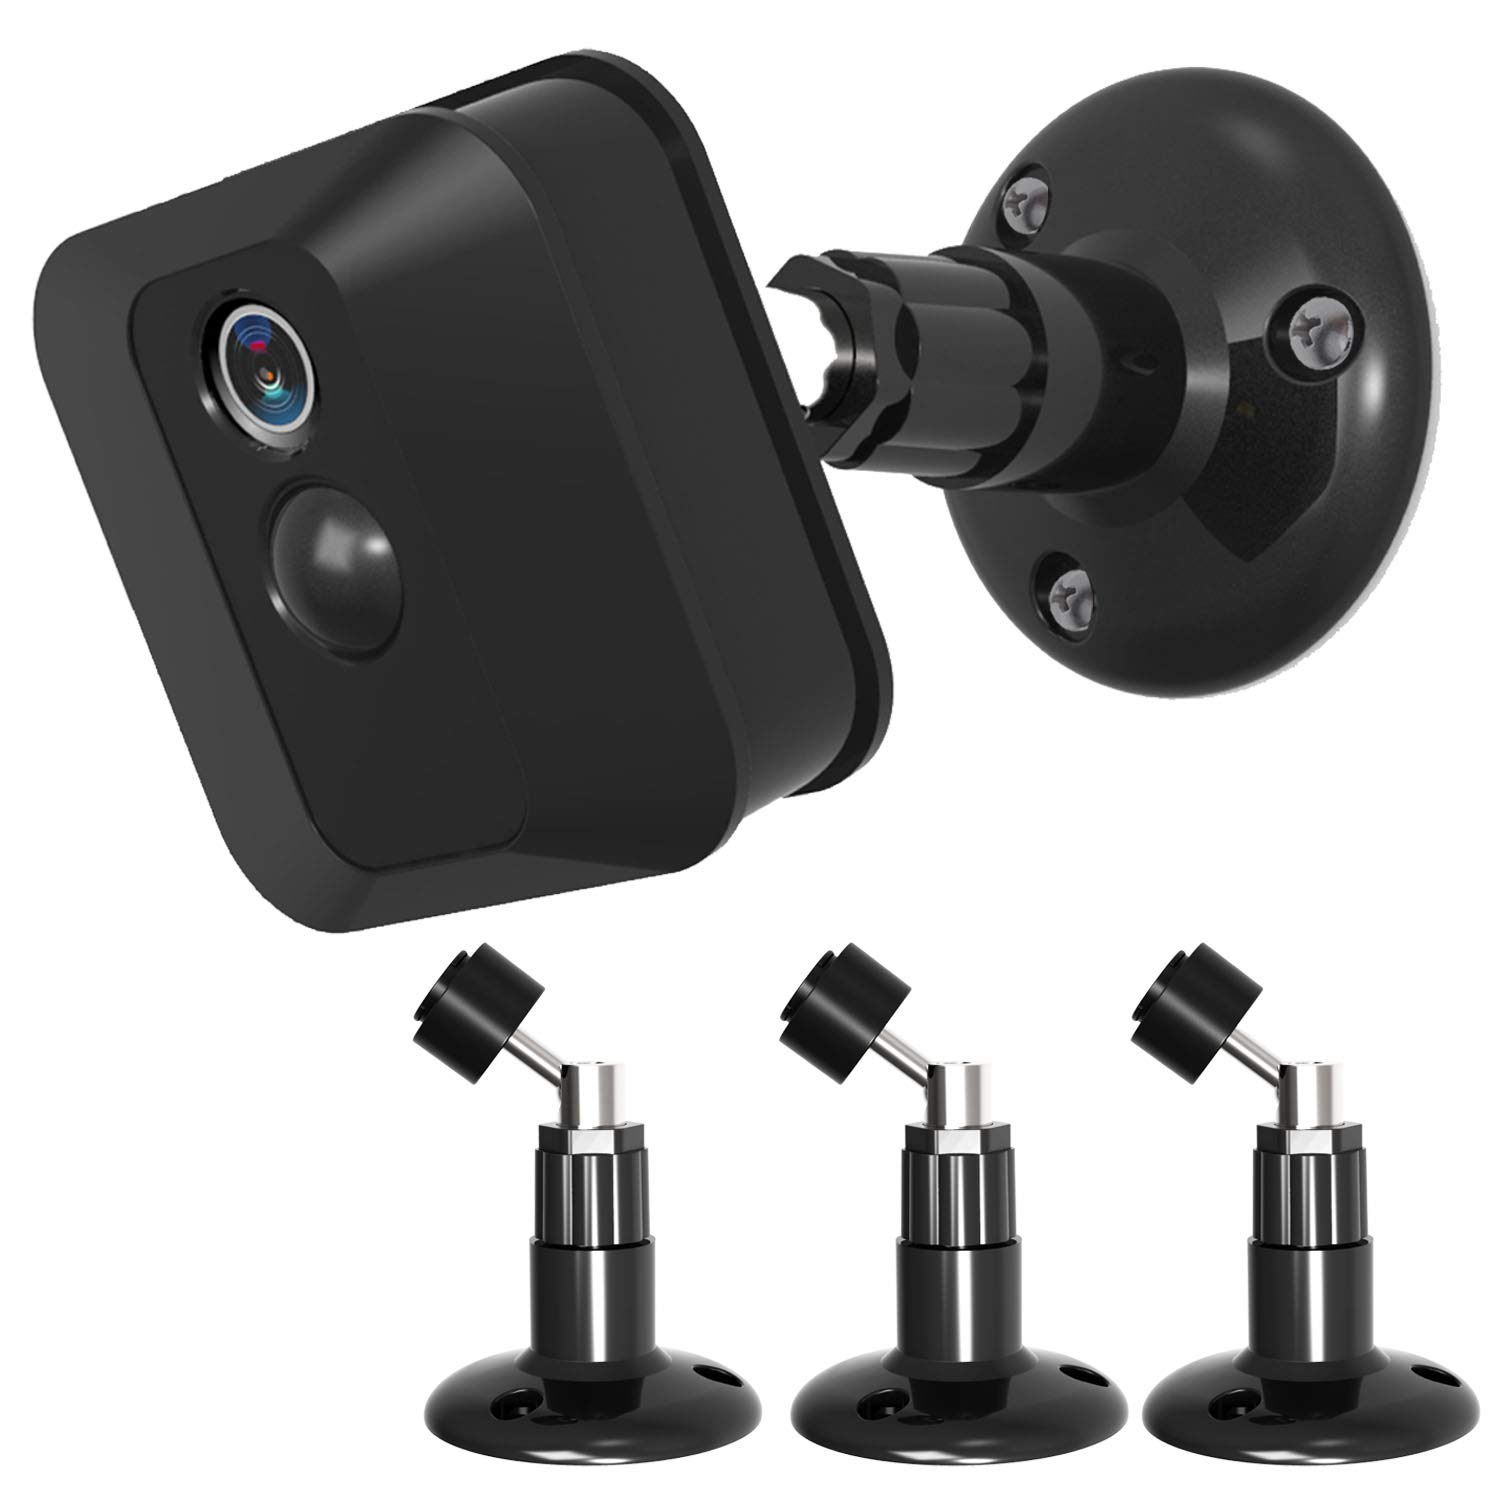 Blink XT Blink XT2 Camera Wall Mount,360 Degree Protective Adjustable Indoor Outdoor Mount for Blink XT Outdoor Camera Security System(Black)-3PACK by Quarble